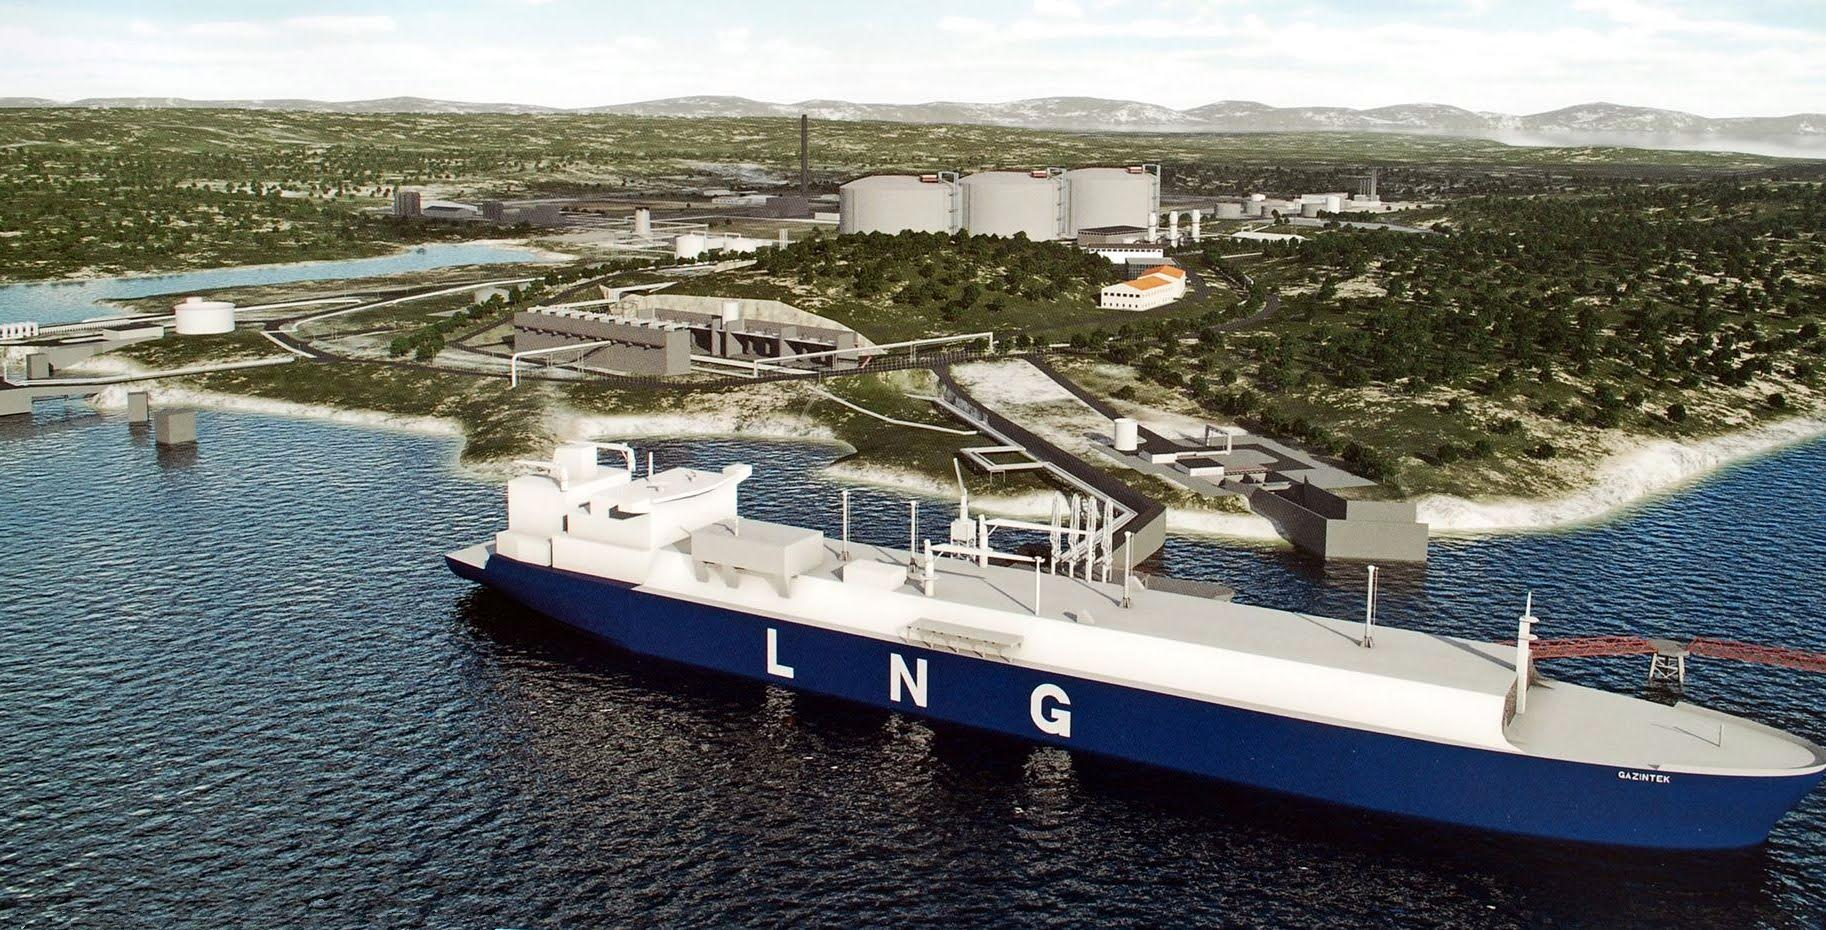 LNG sets the Balkans 'on fire'